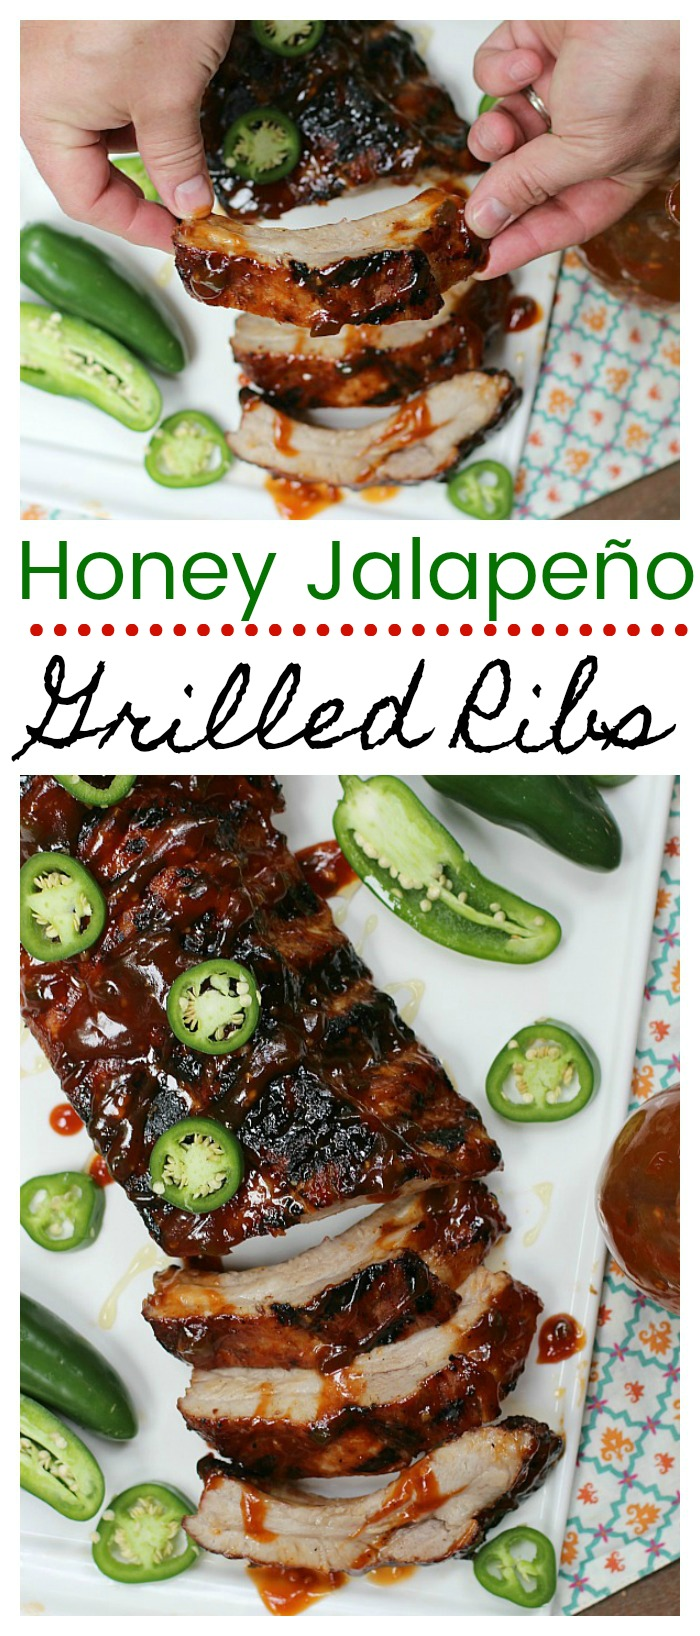 Honey Jalapeño Grilled Ribs